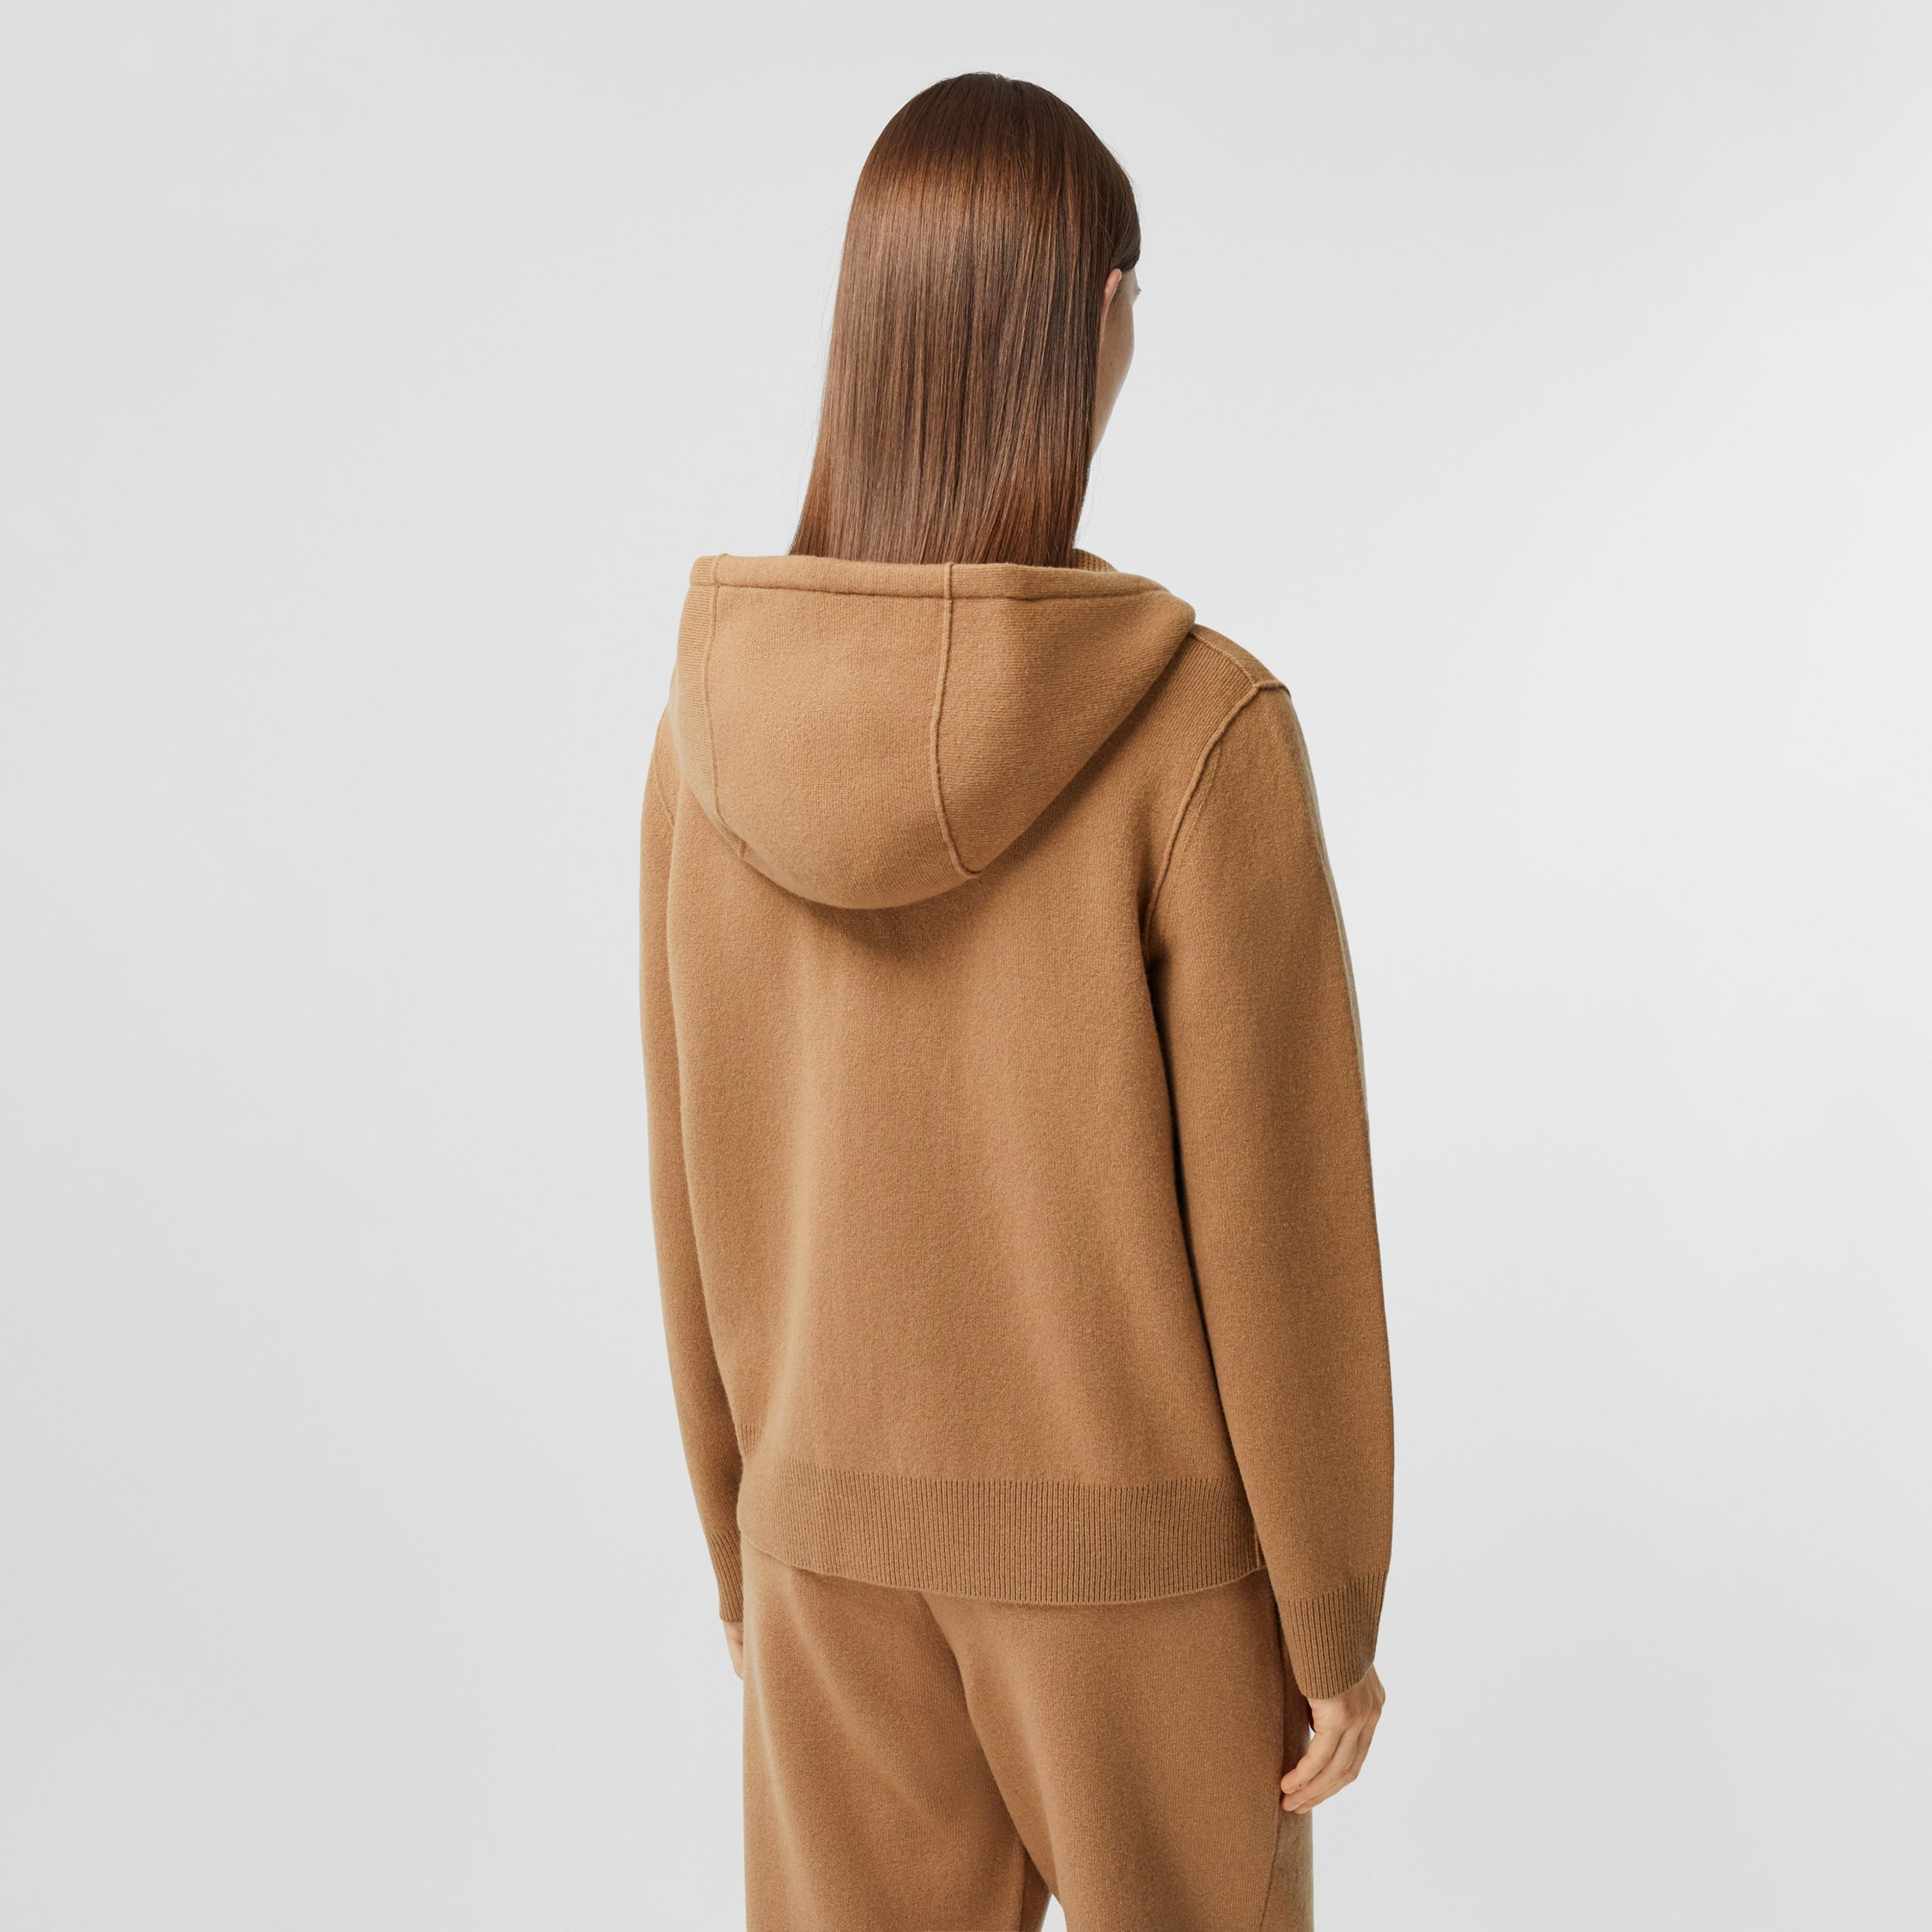 Monogram Motif Cashmere Blend Hooded Top in Camel - Women | Burberry Canada - 3